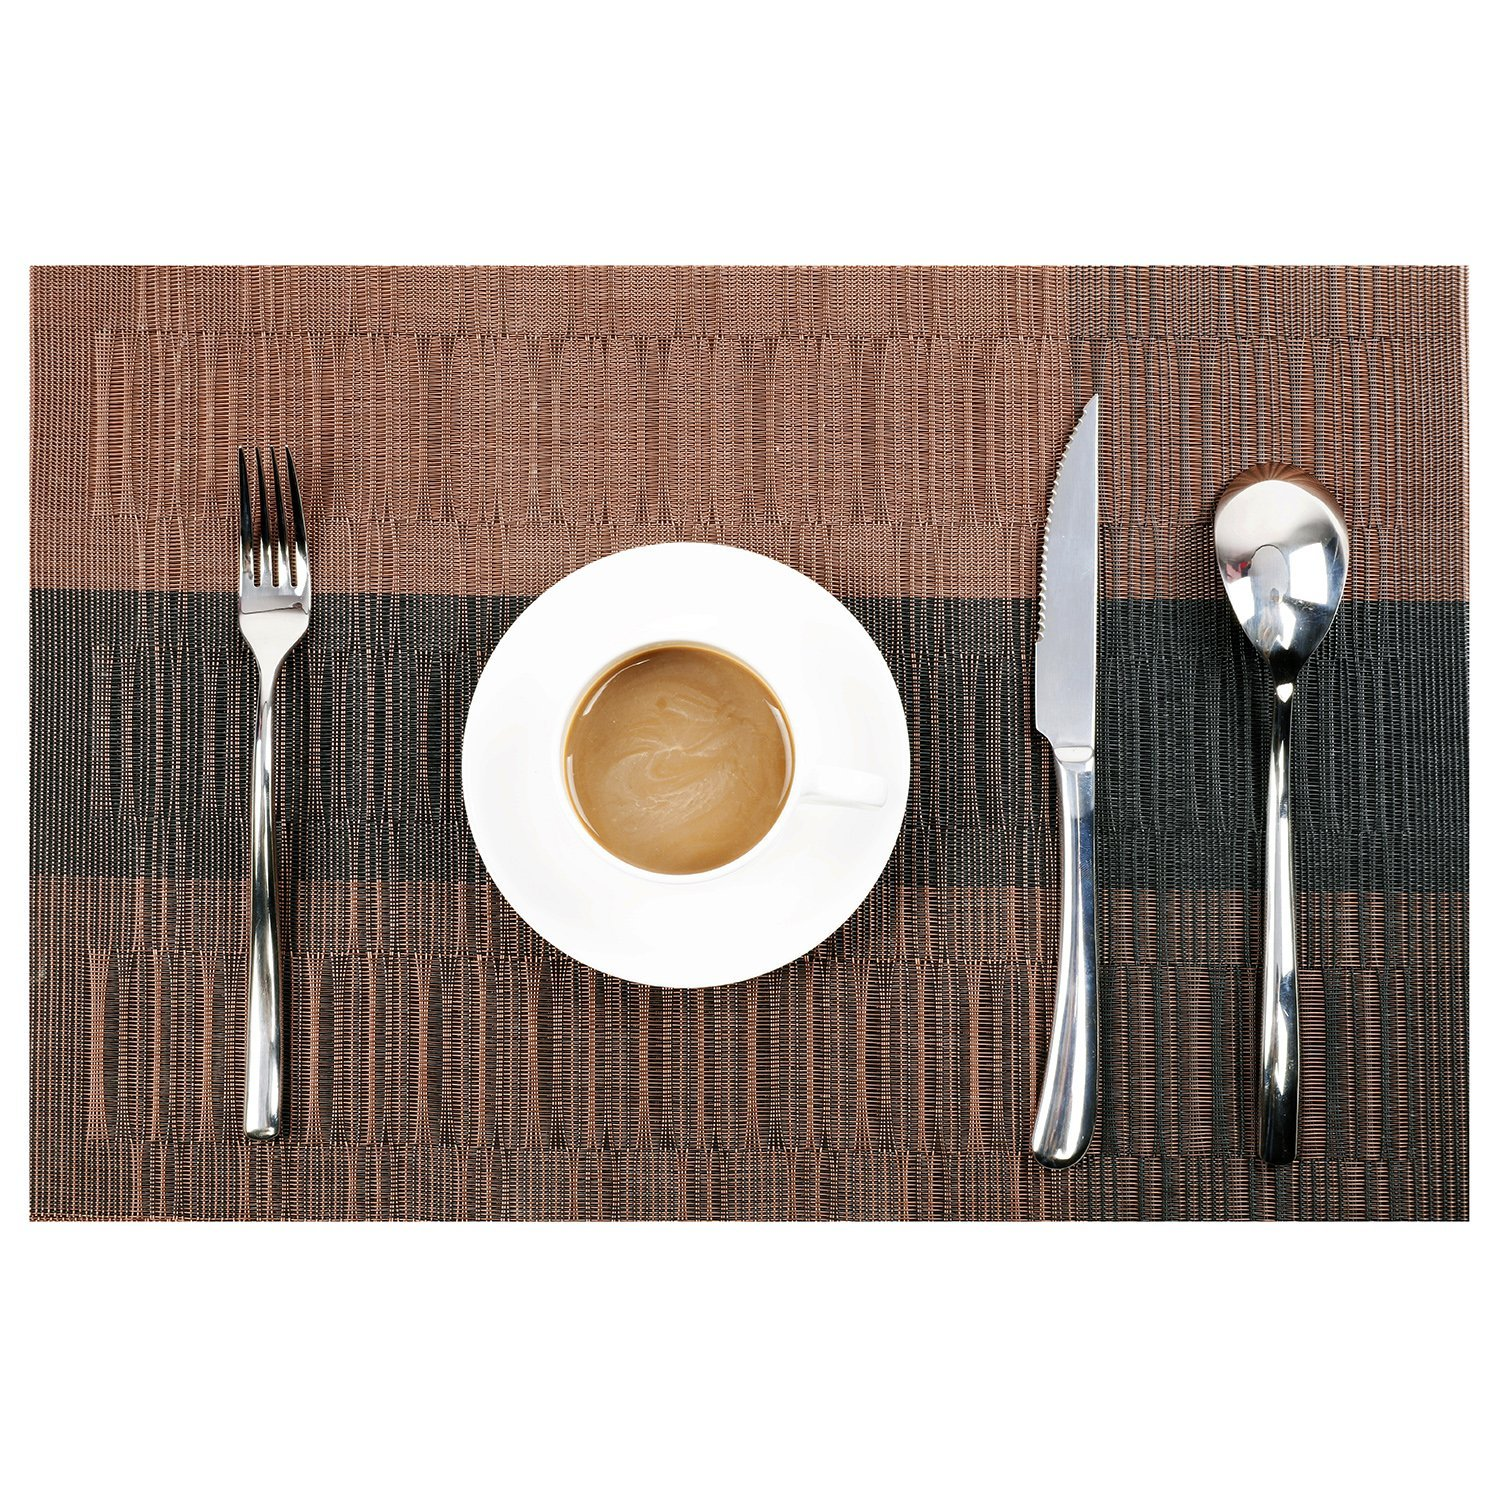 Cheap Placemats And Napkins Home Design Decor